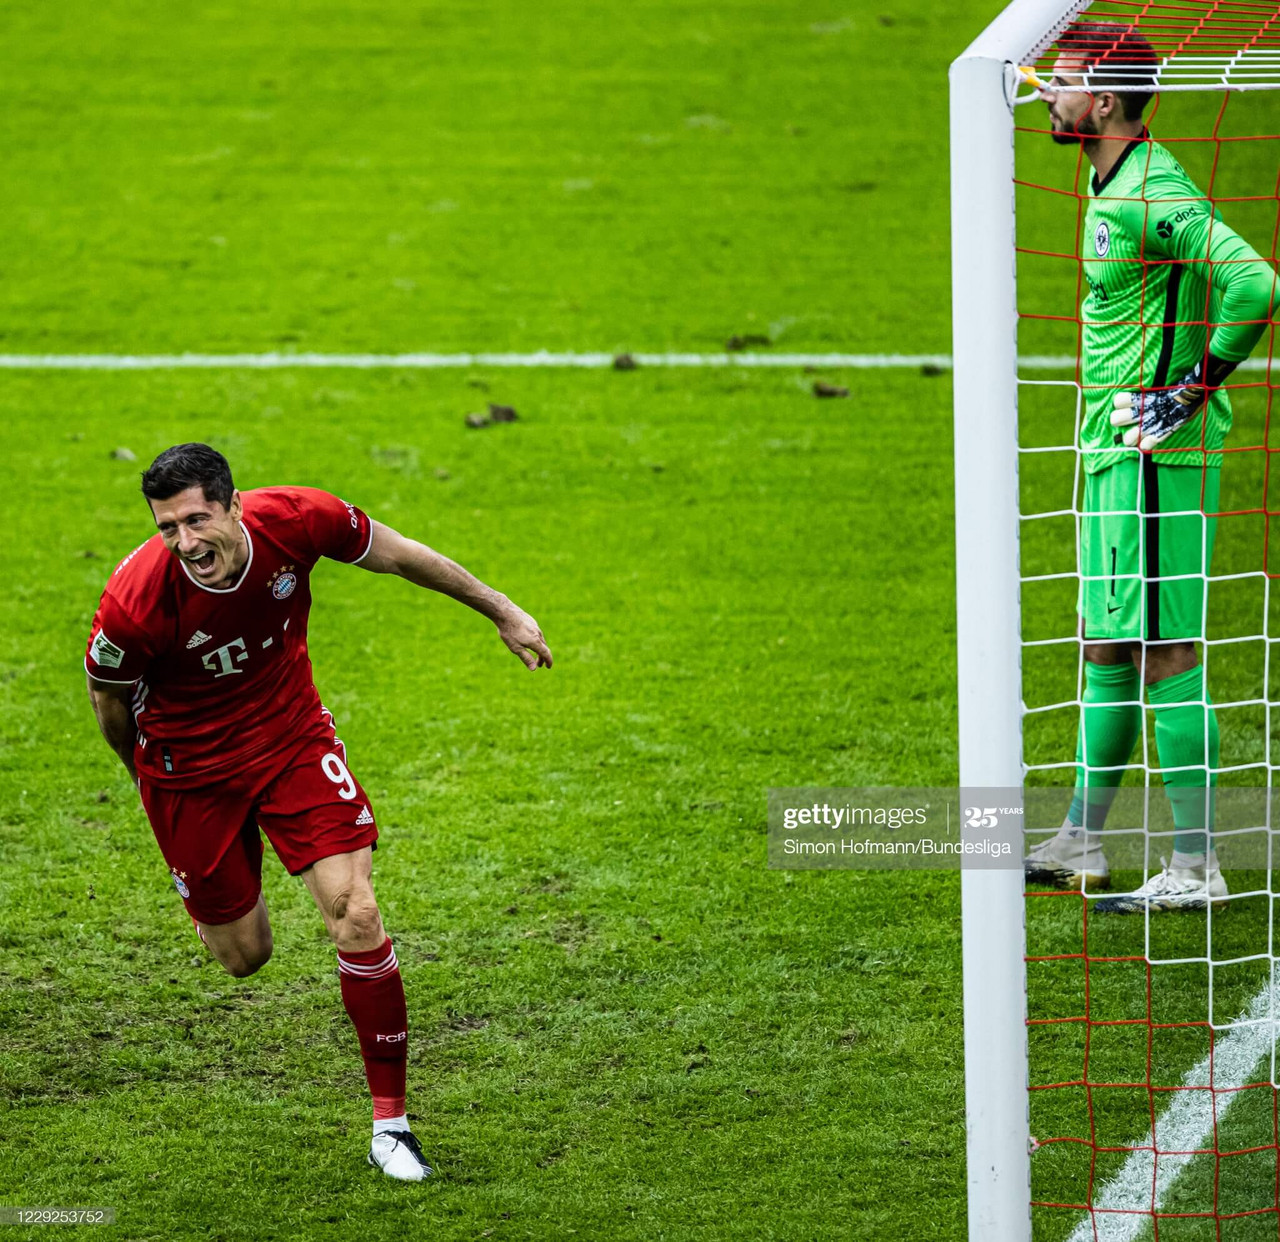 (Photo by Simon Hofmann/Bundesliga/Bundesliga Collection via Getty Images)